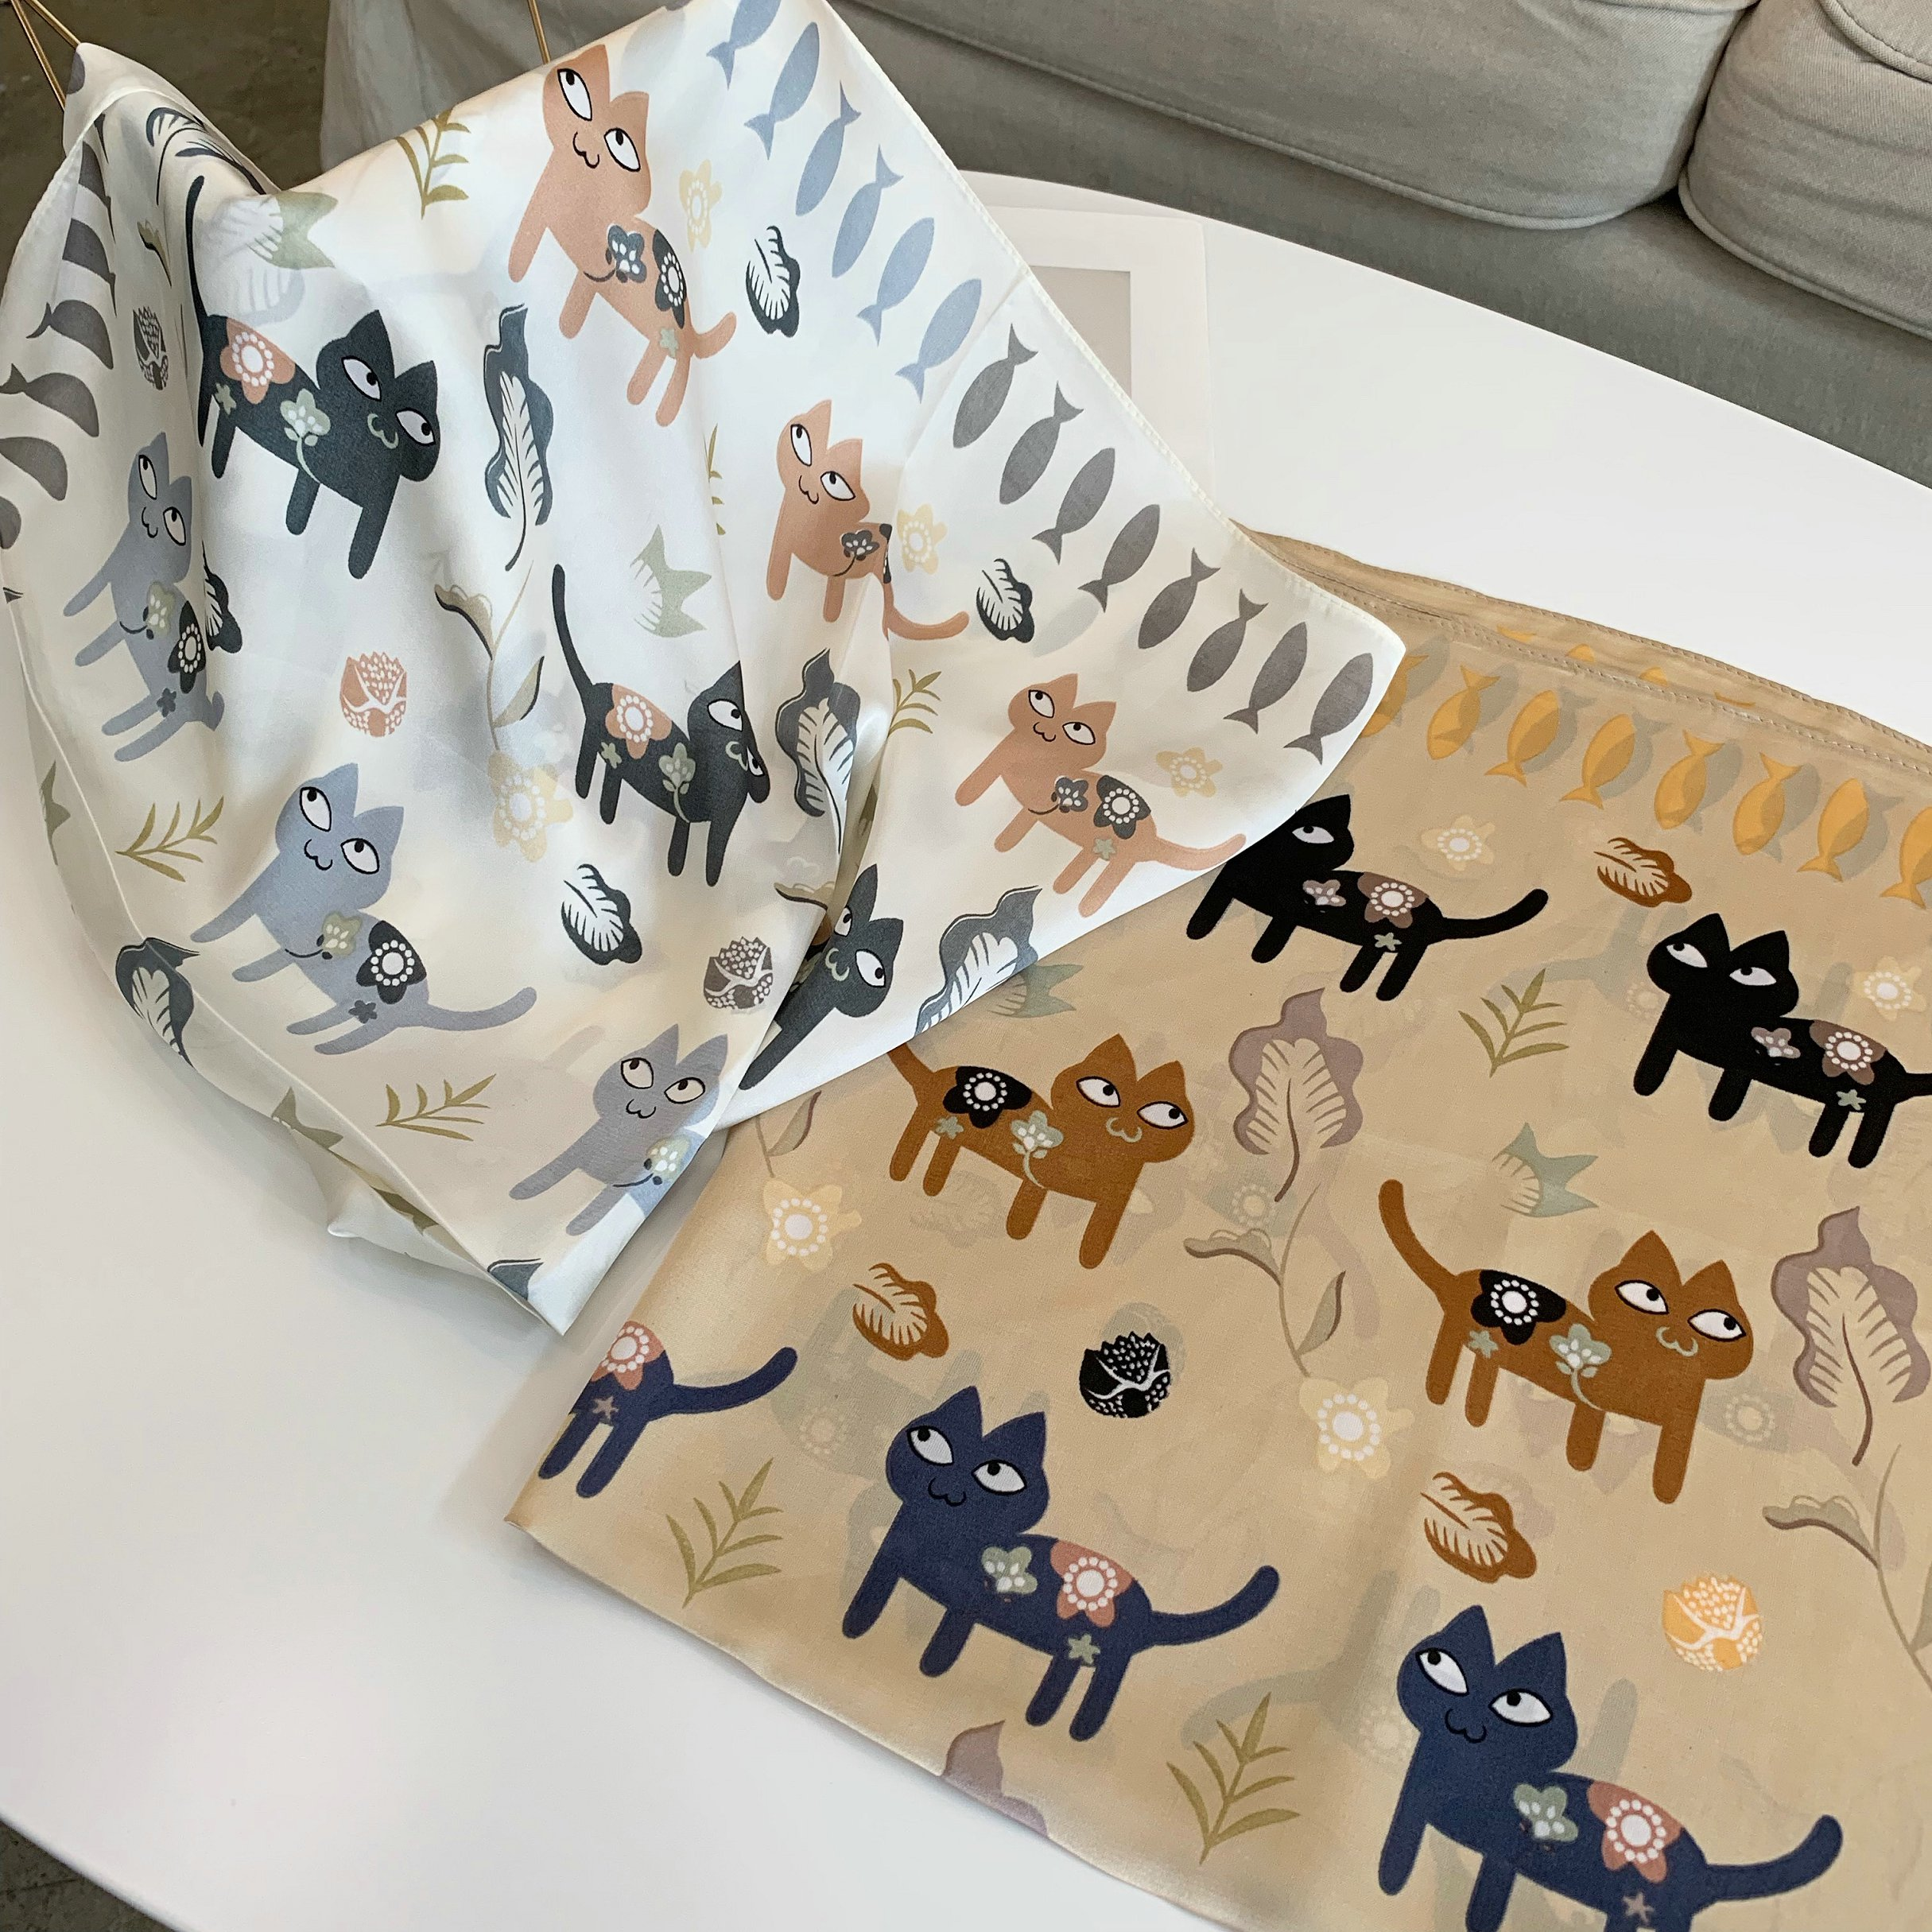 70*70 Printing Cat Small Square Scarf Small Silk Like Scarf Women's Thin Scarf Fashion Scarf